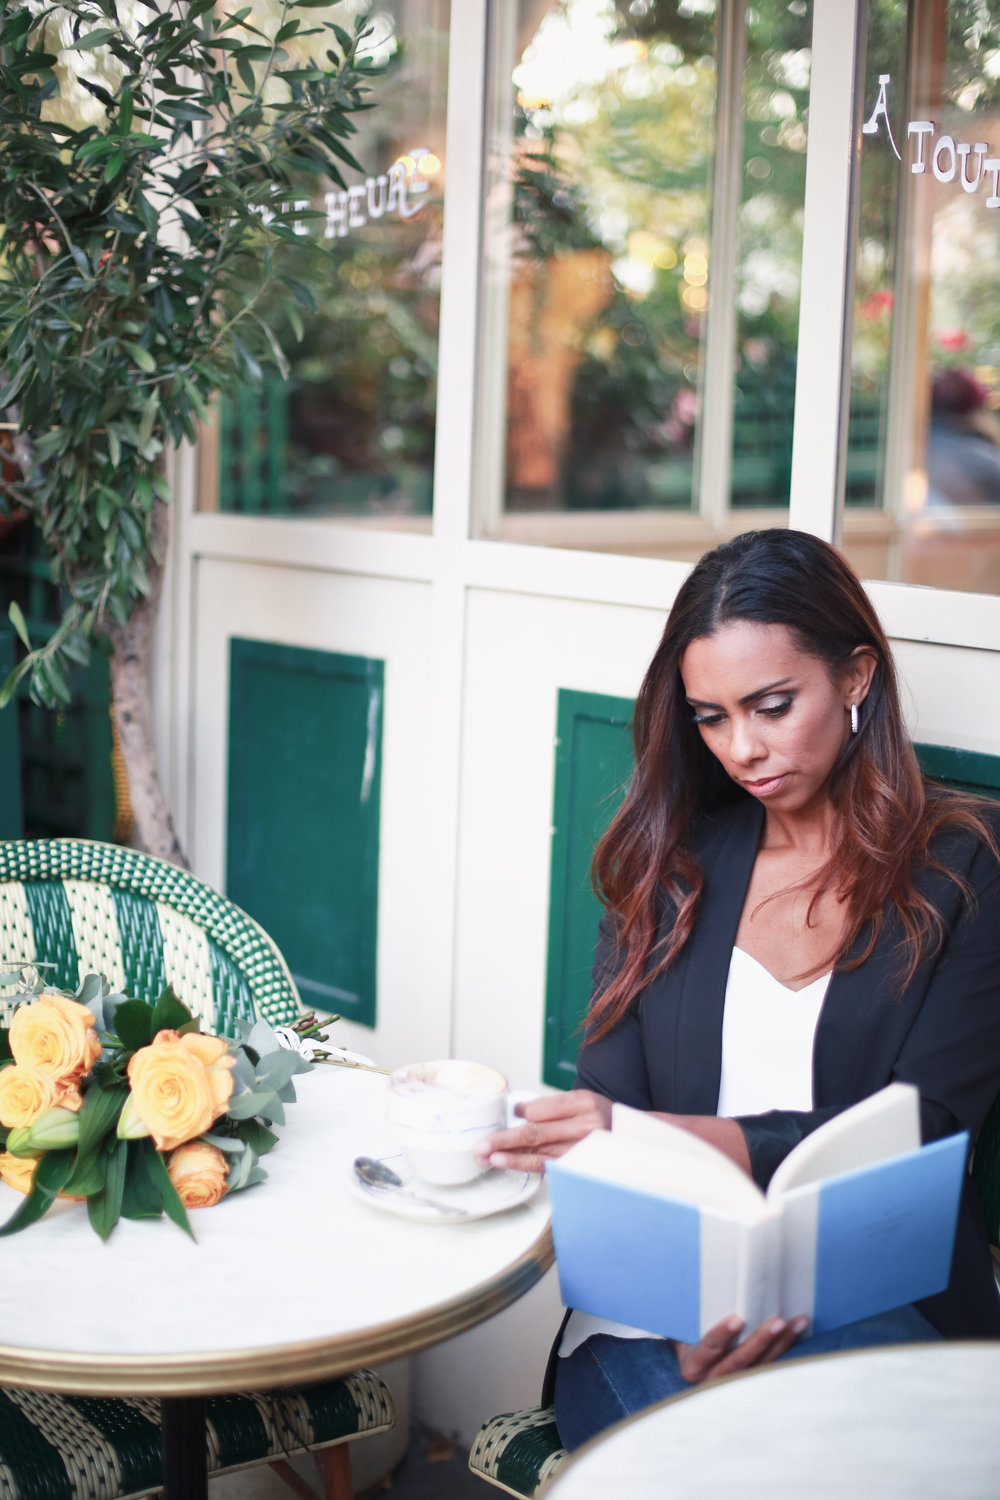 Vacation photo shoot in Paris with Flytographer. Woman sitting at cafe reading book in Paris